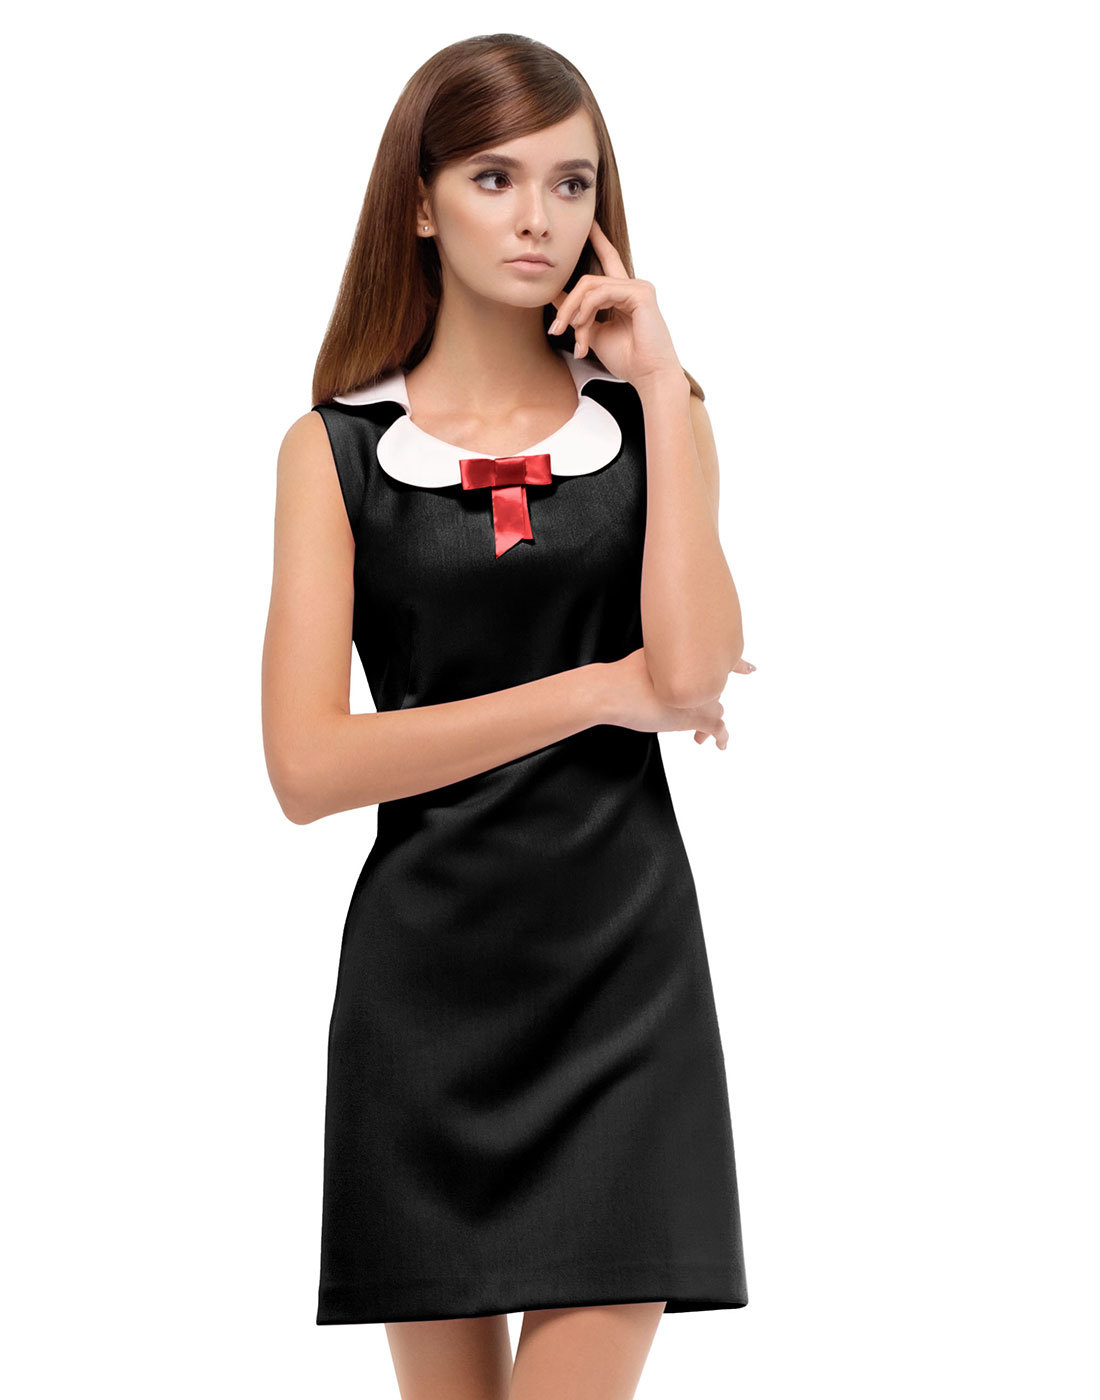 MARMALADE Retro 60s A-Line Mod Mini Dress in Black